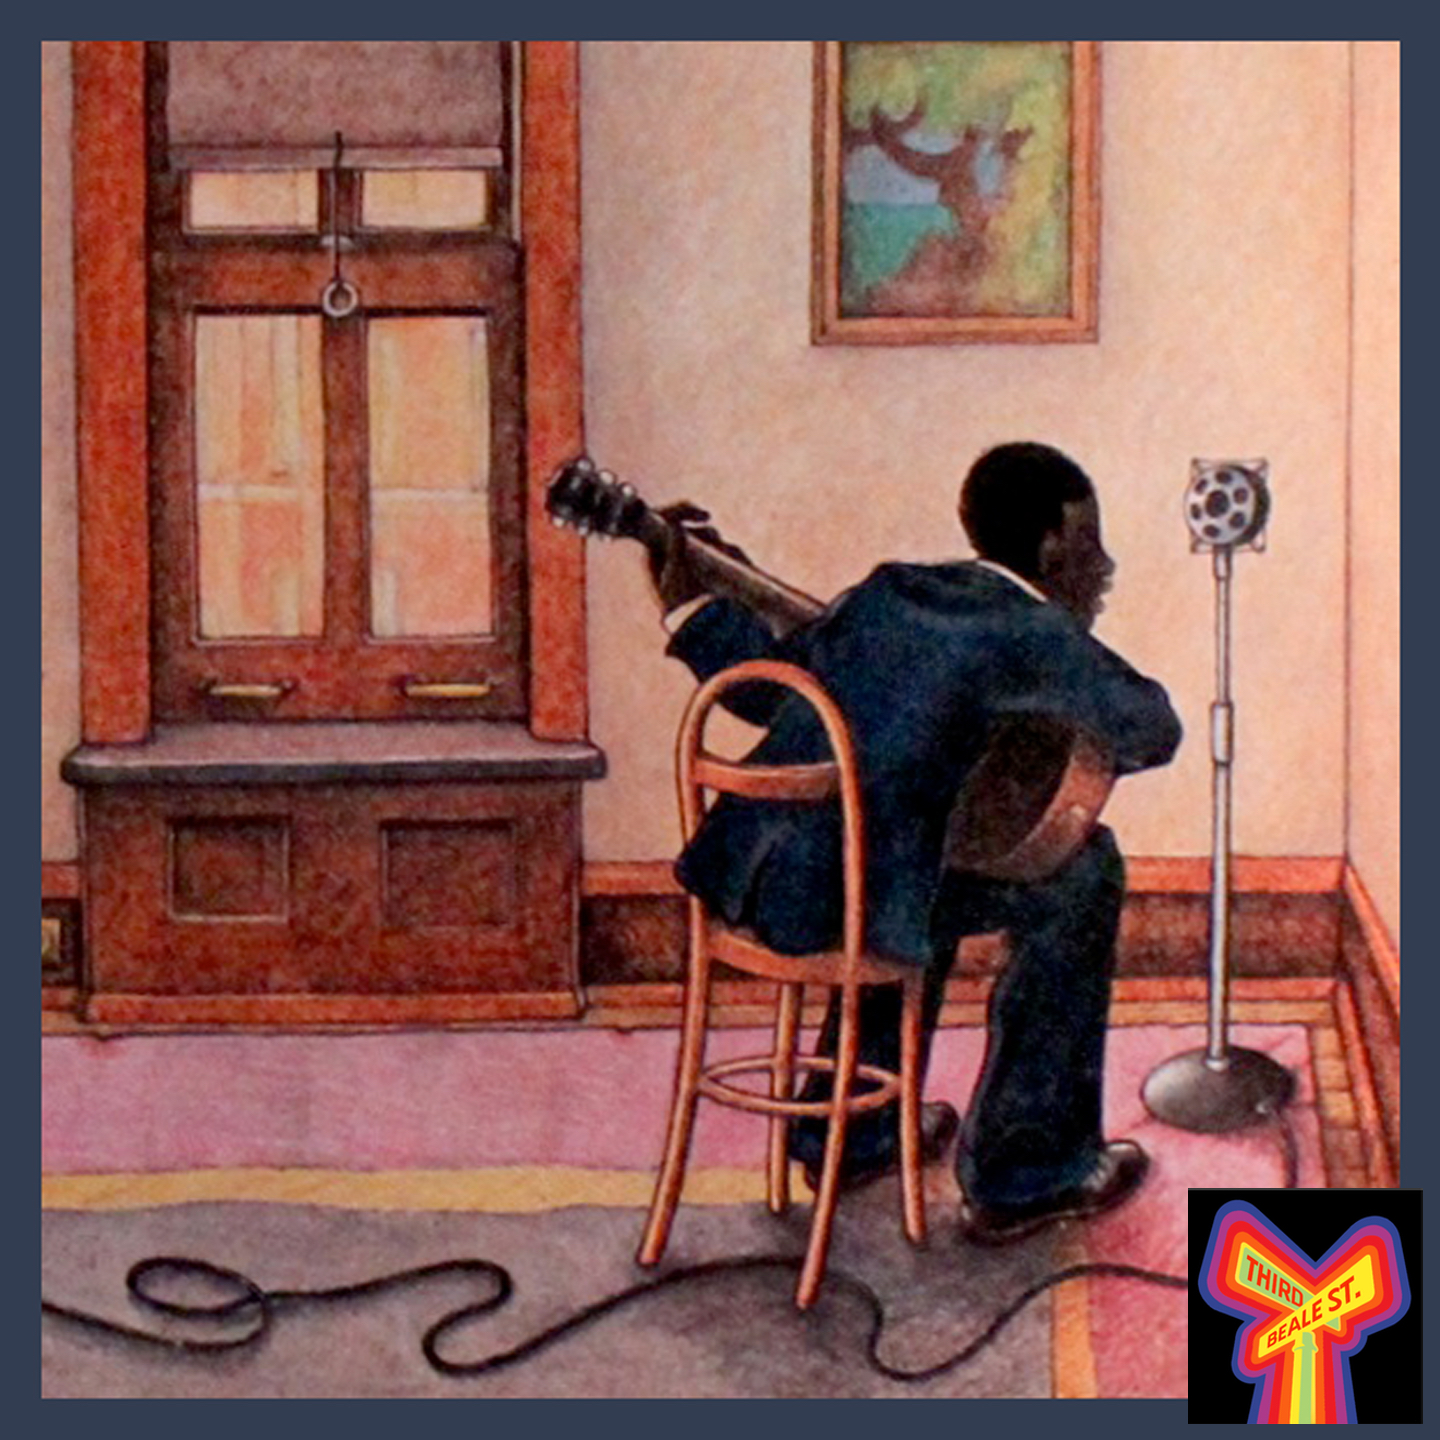 Caption: Illustration by the Daily Planet/Tom Wilson, depicting Robert Johnson's recording debut in a San Antonio hotel room, 1936.